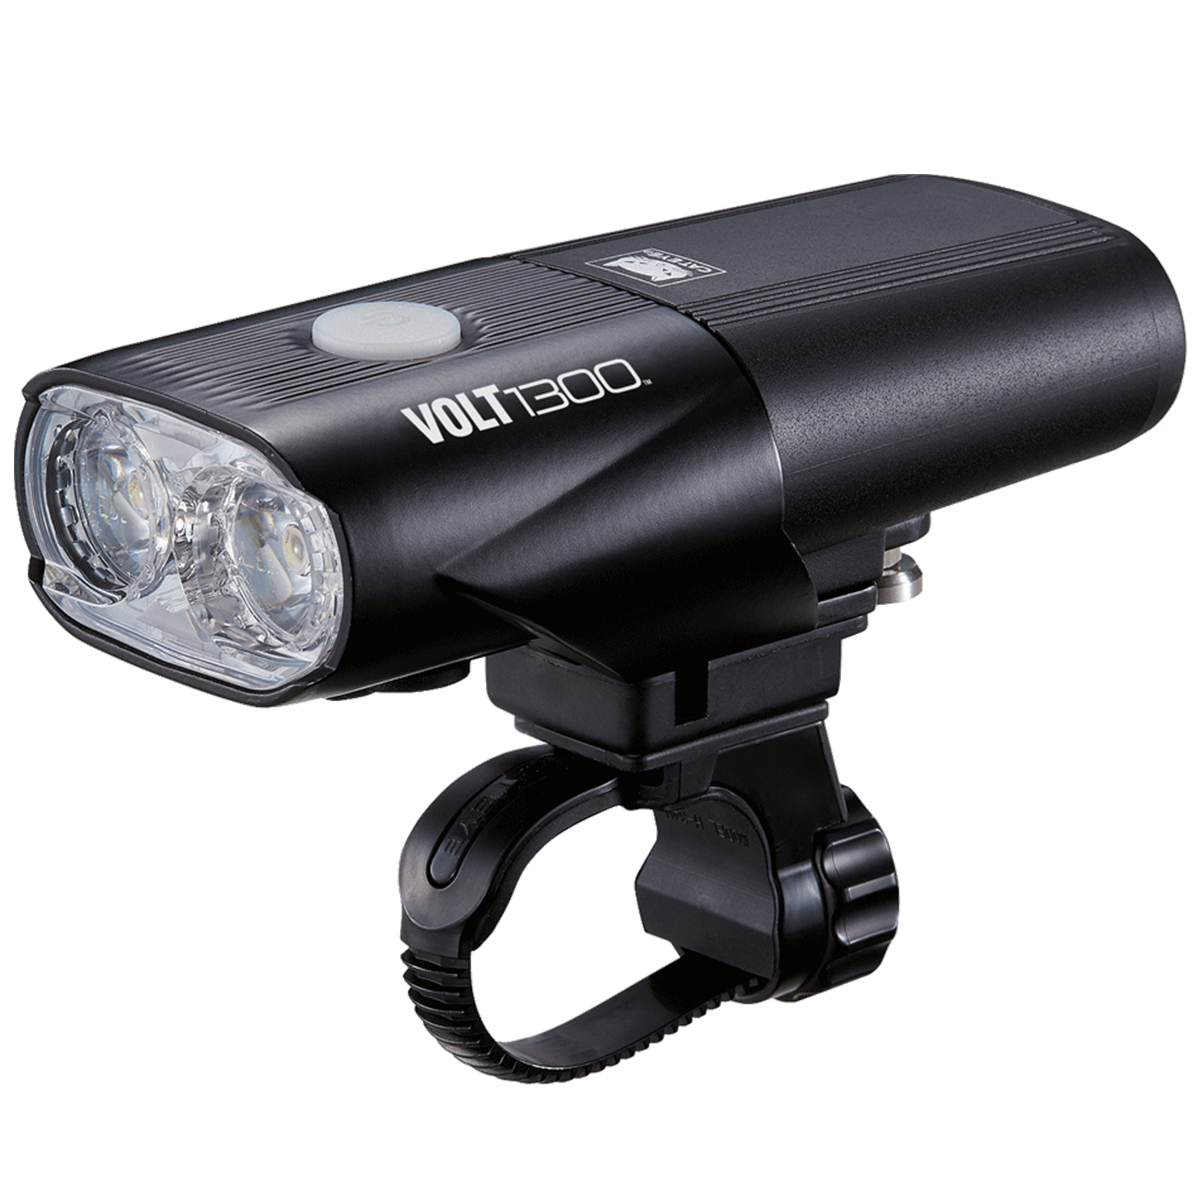 Cateye Volt 1300 Rechargeable Front Light